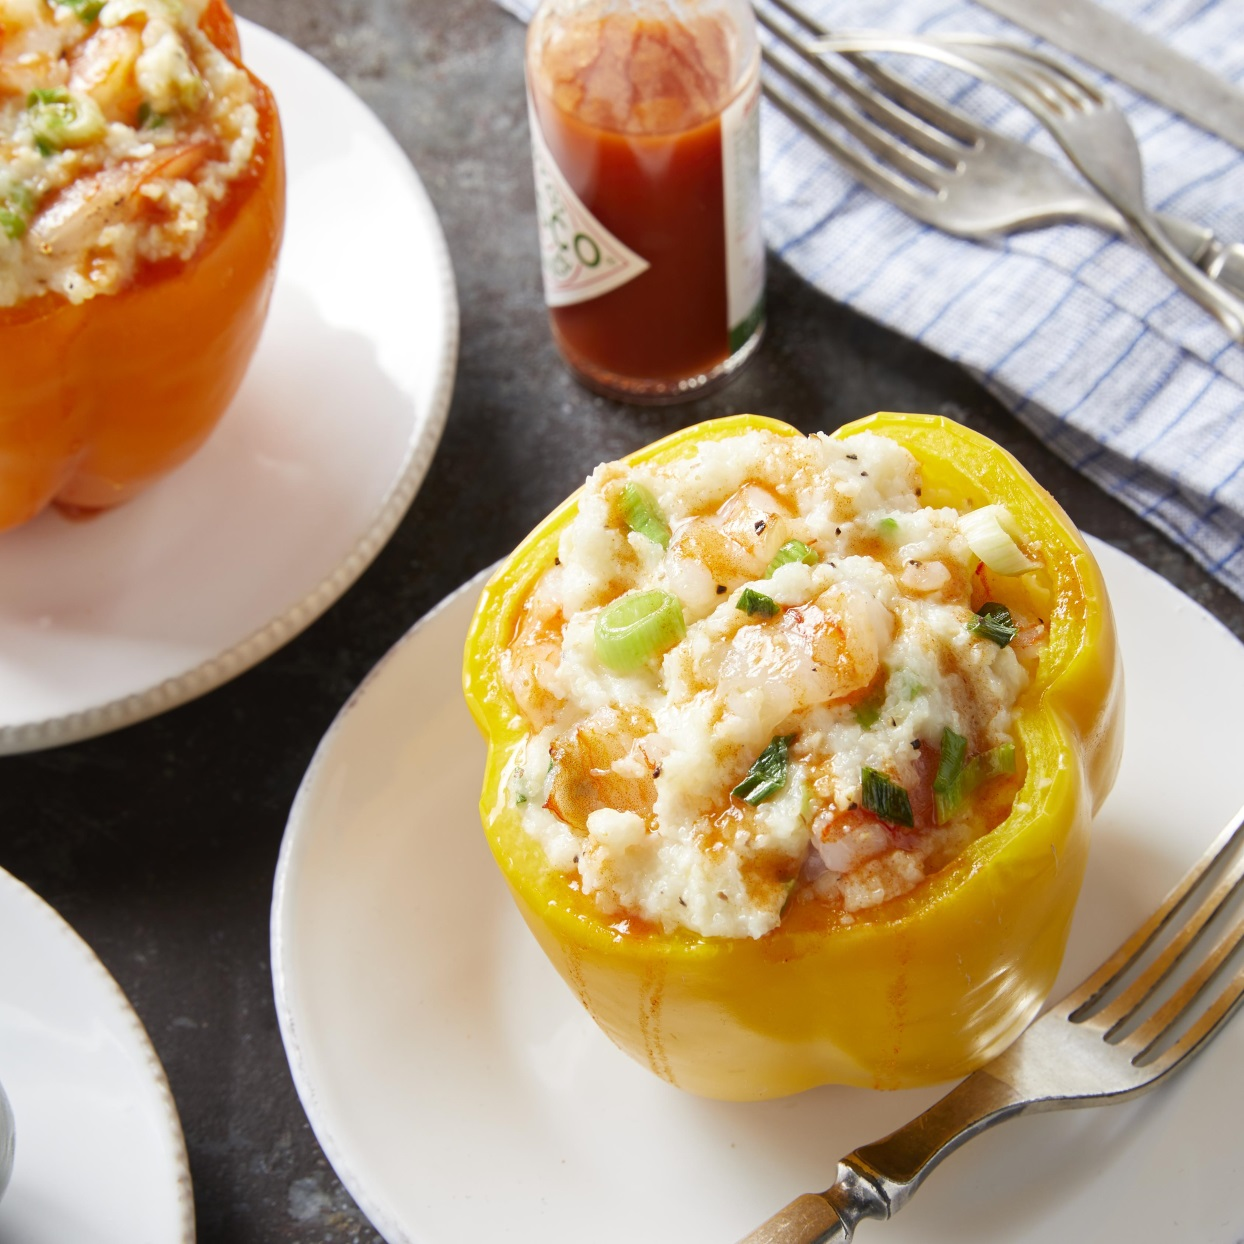 Shrimp-&-Grits-Stuffed Peppers